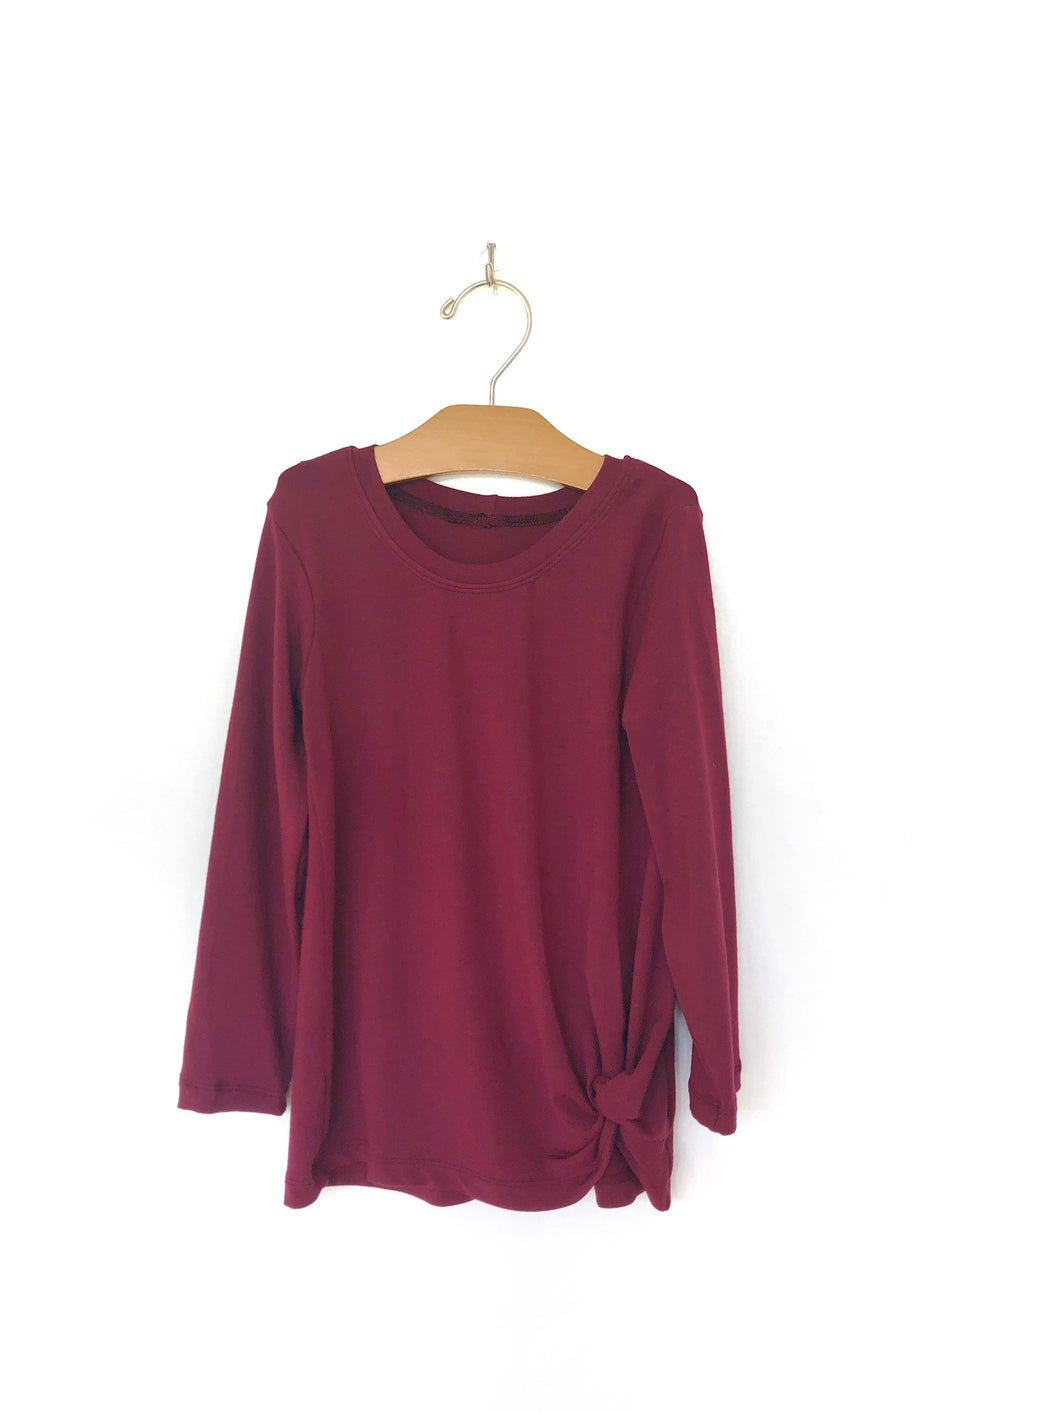 Mini Knotted Tee - Bordeaux